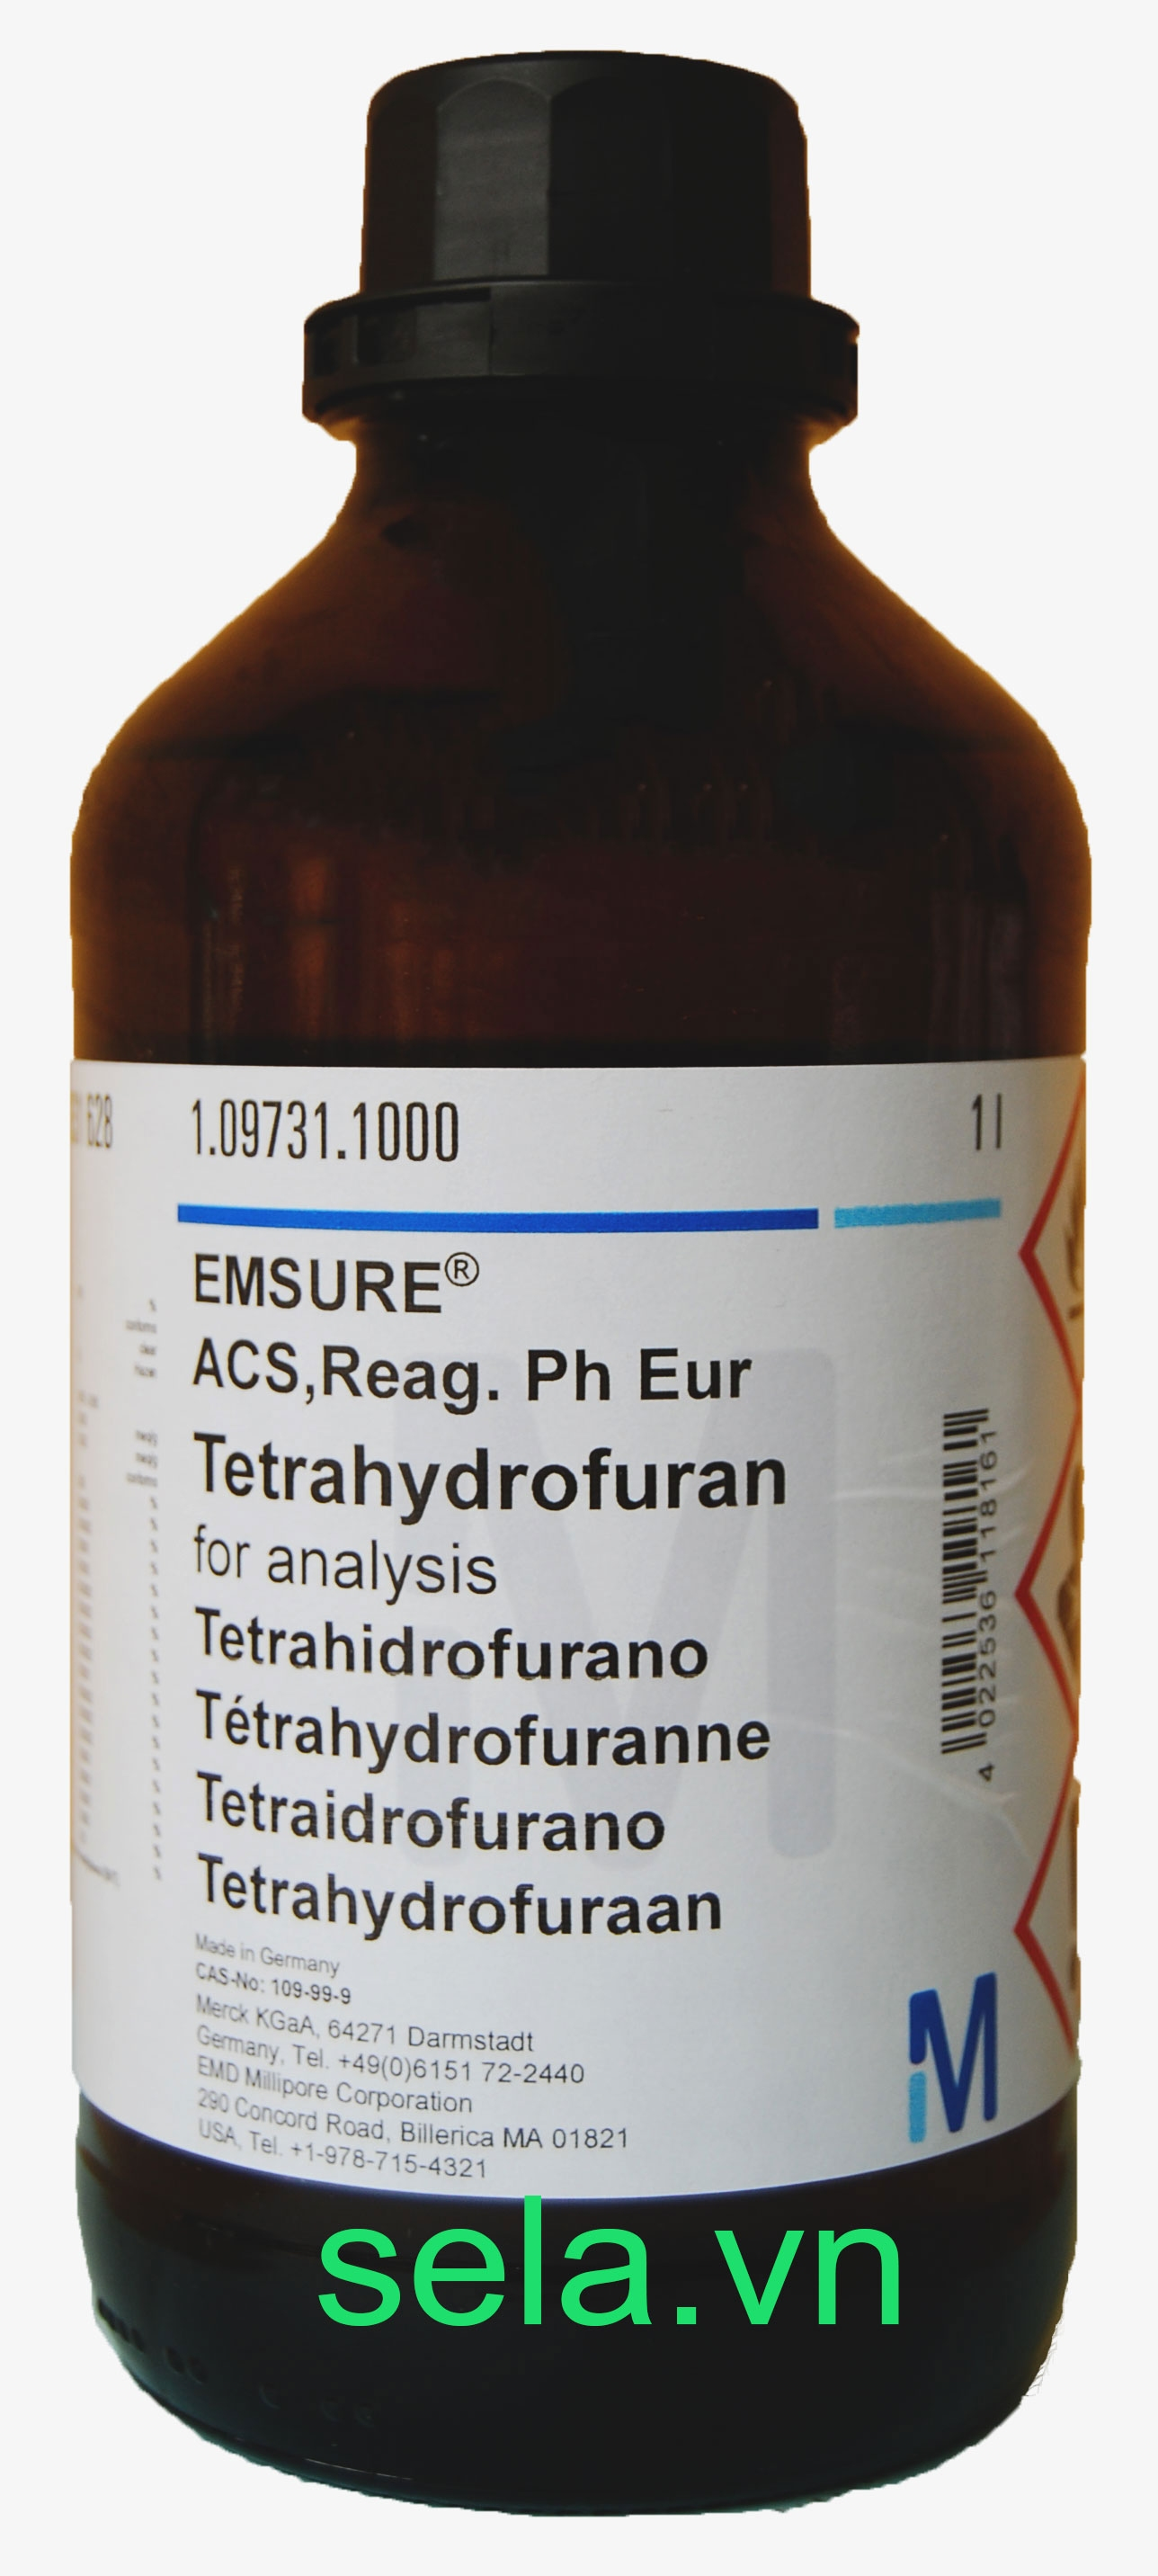 Tetrahydrofuran for analysis EMSURE® ACS,Reag. Ph Eur